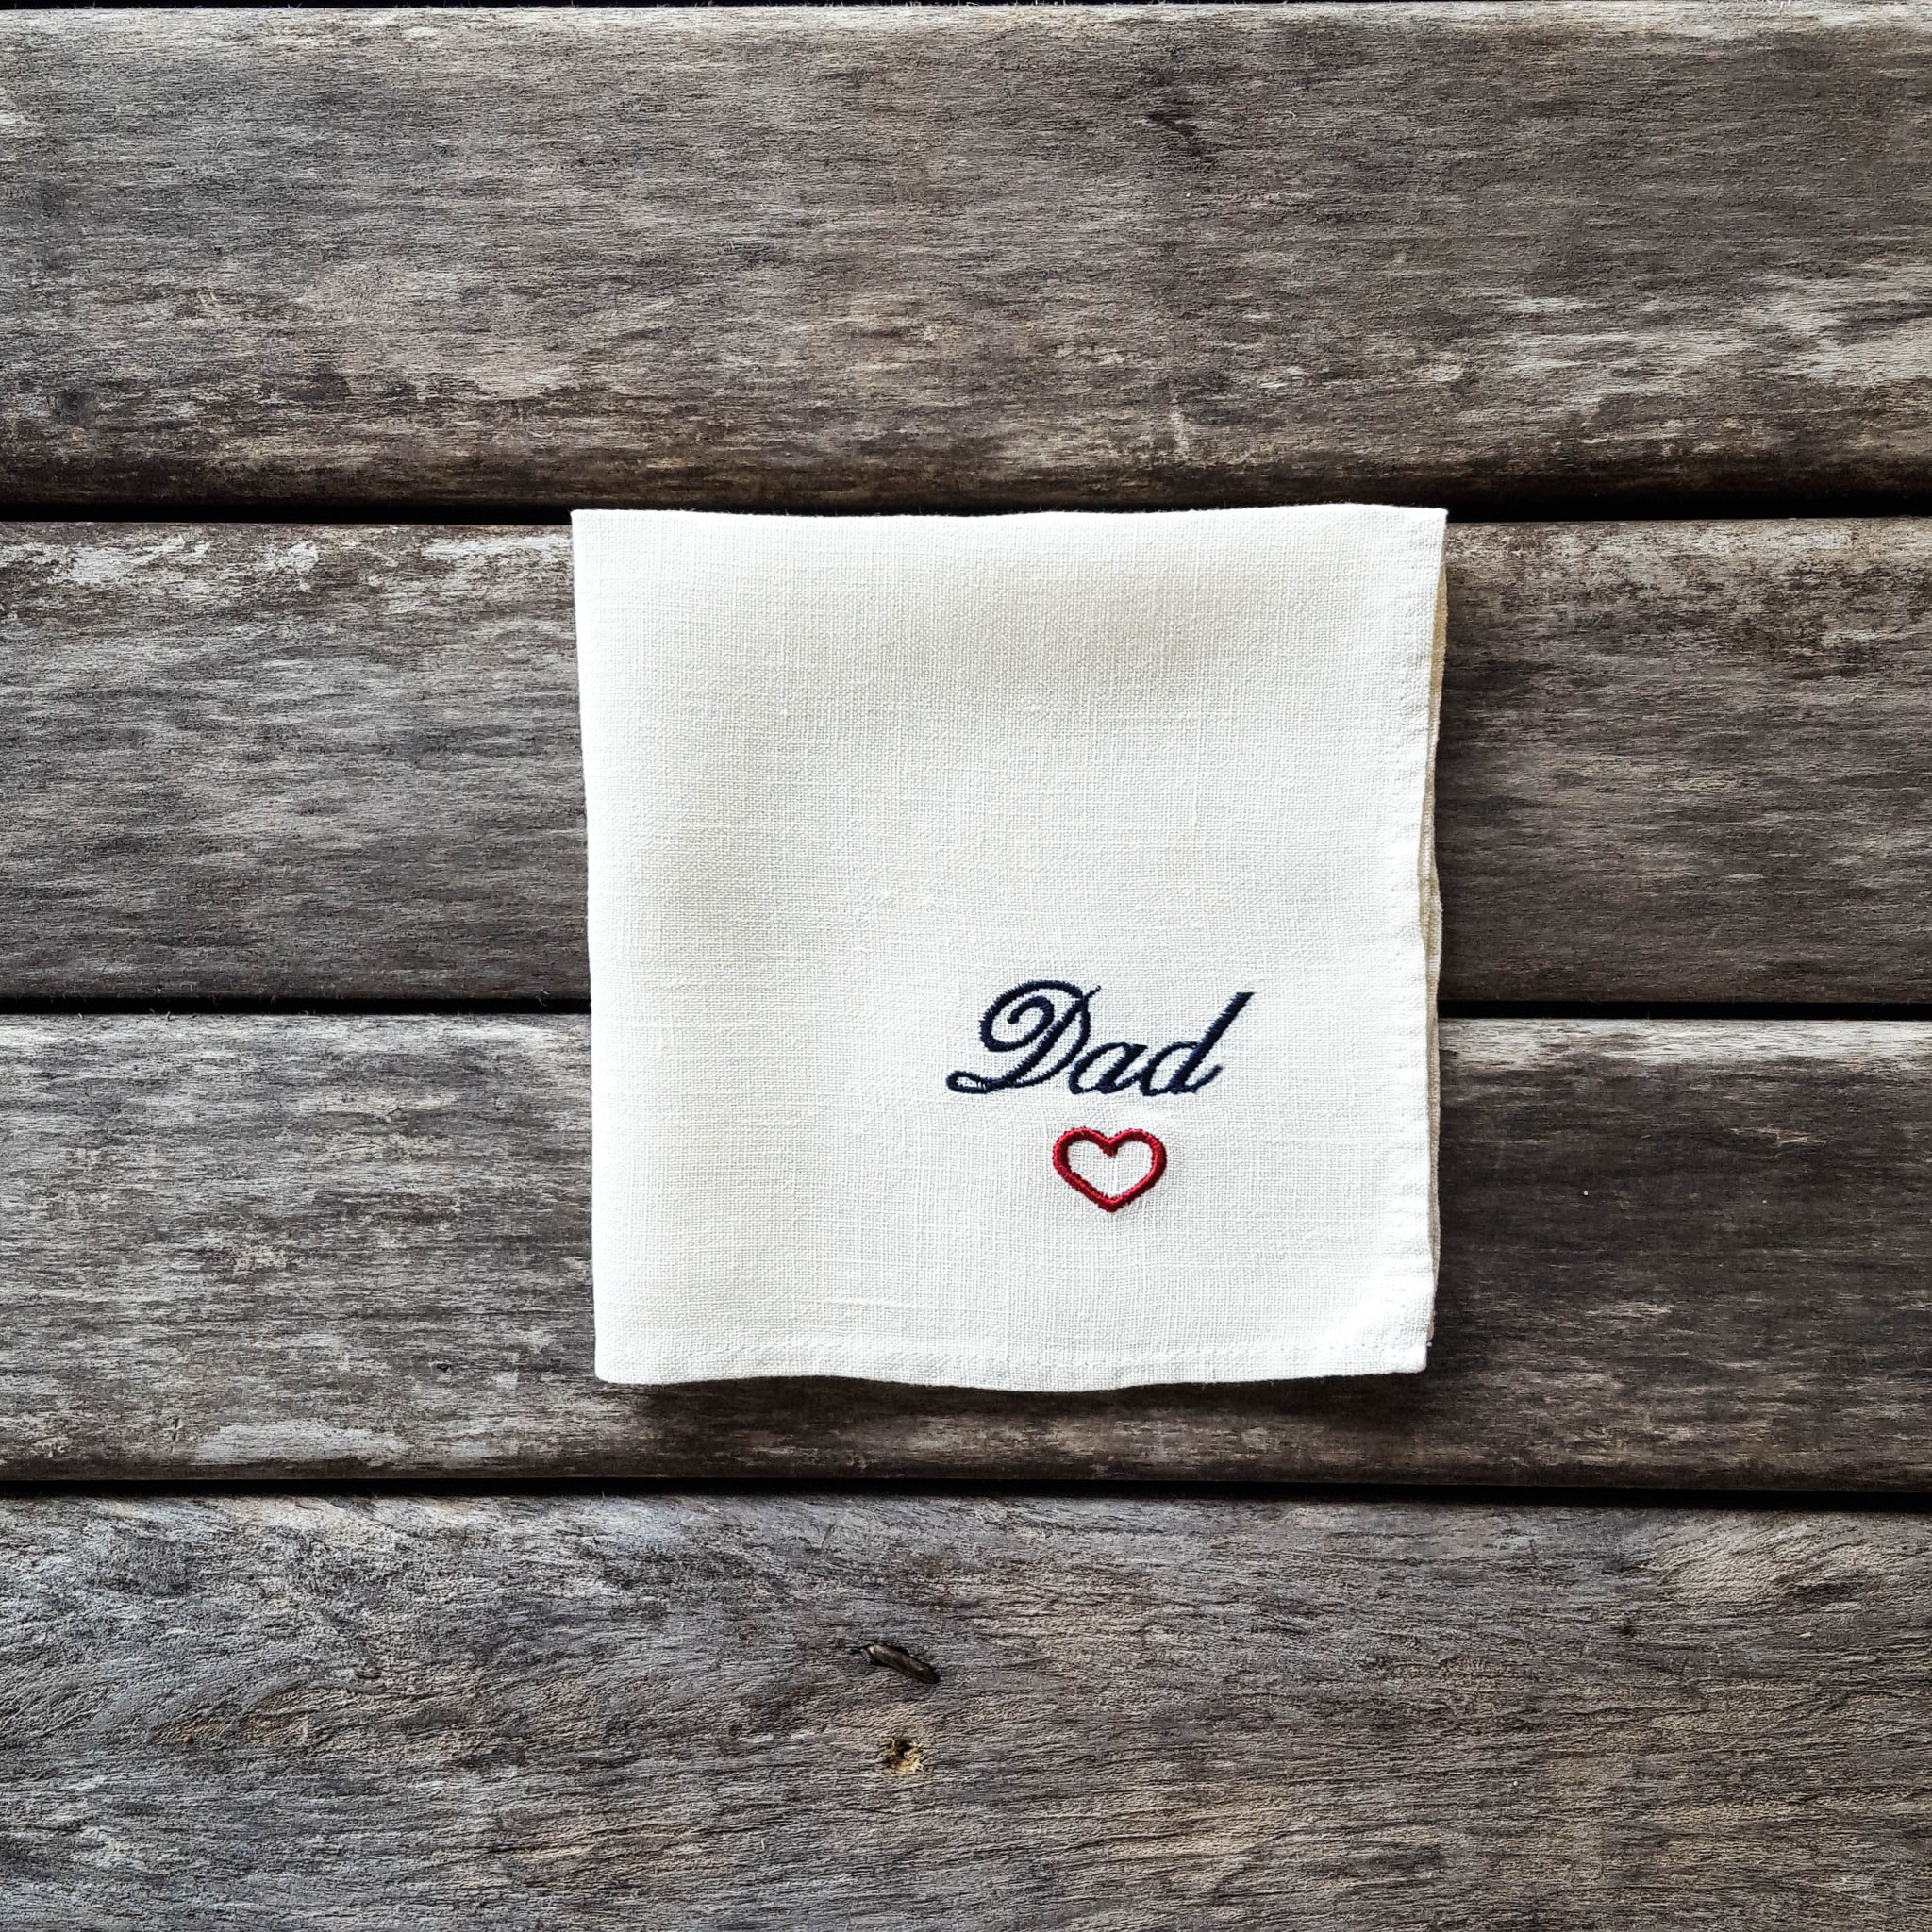 White embroidered linen handkerchief, Dad handkerchief